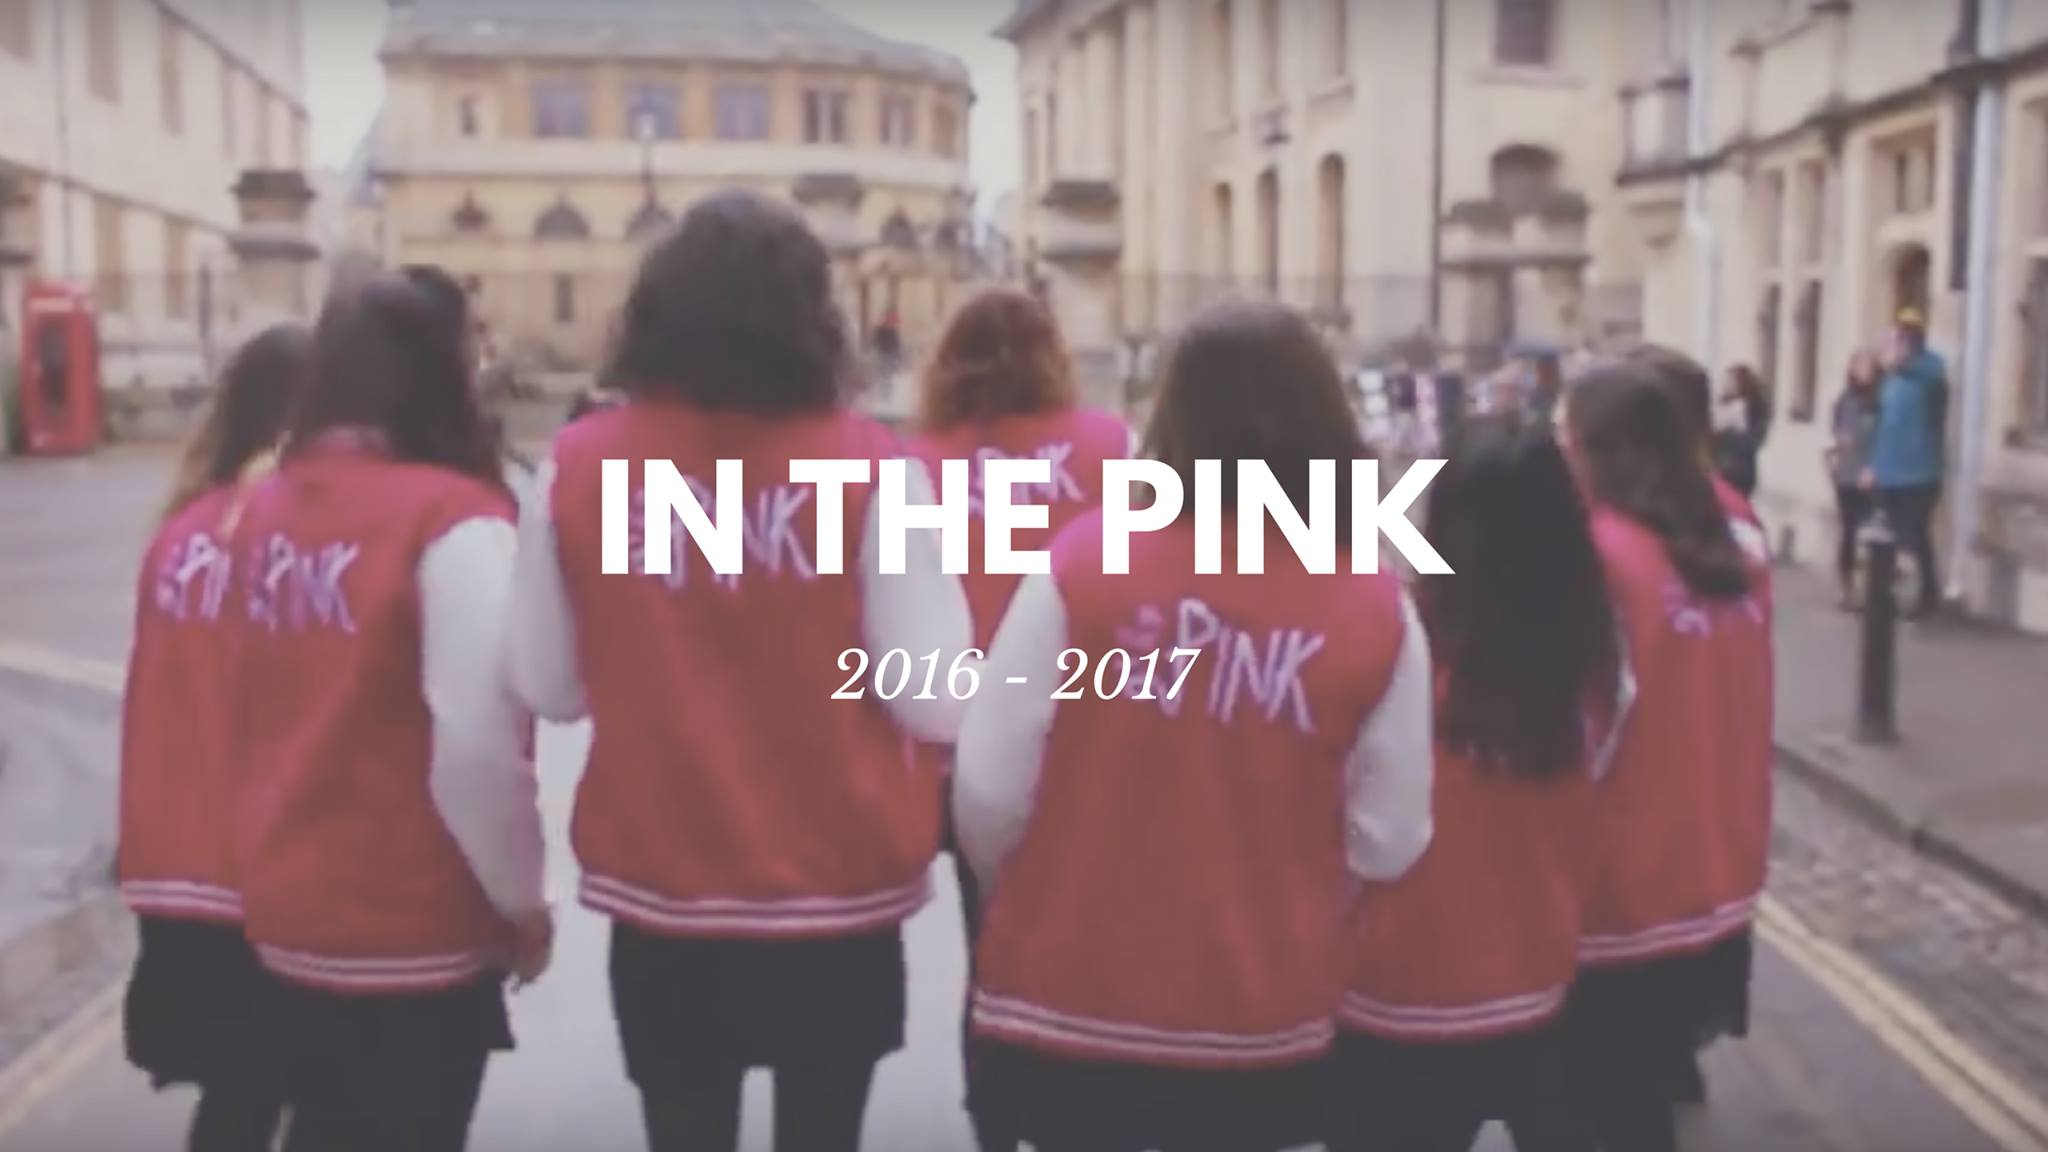 Live Review: A Magical Edinburgh Launch by In the Pink